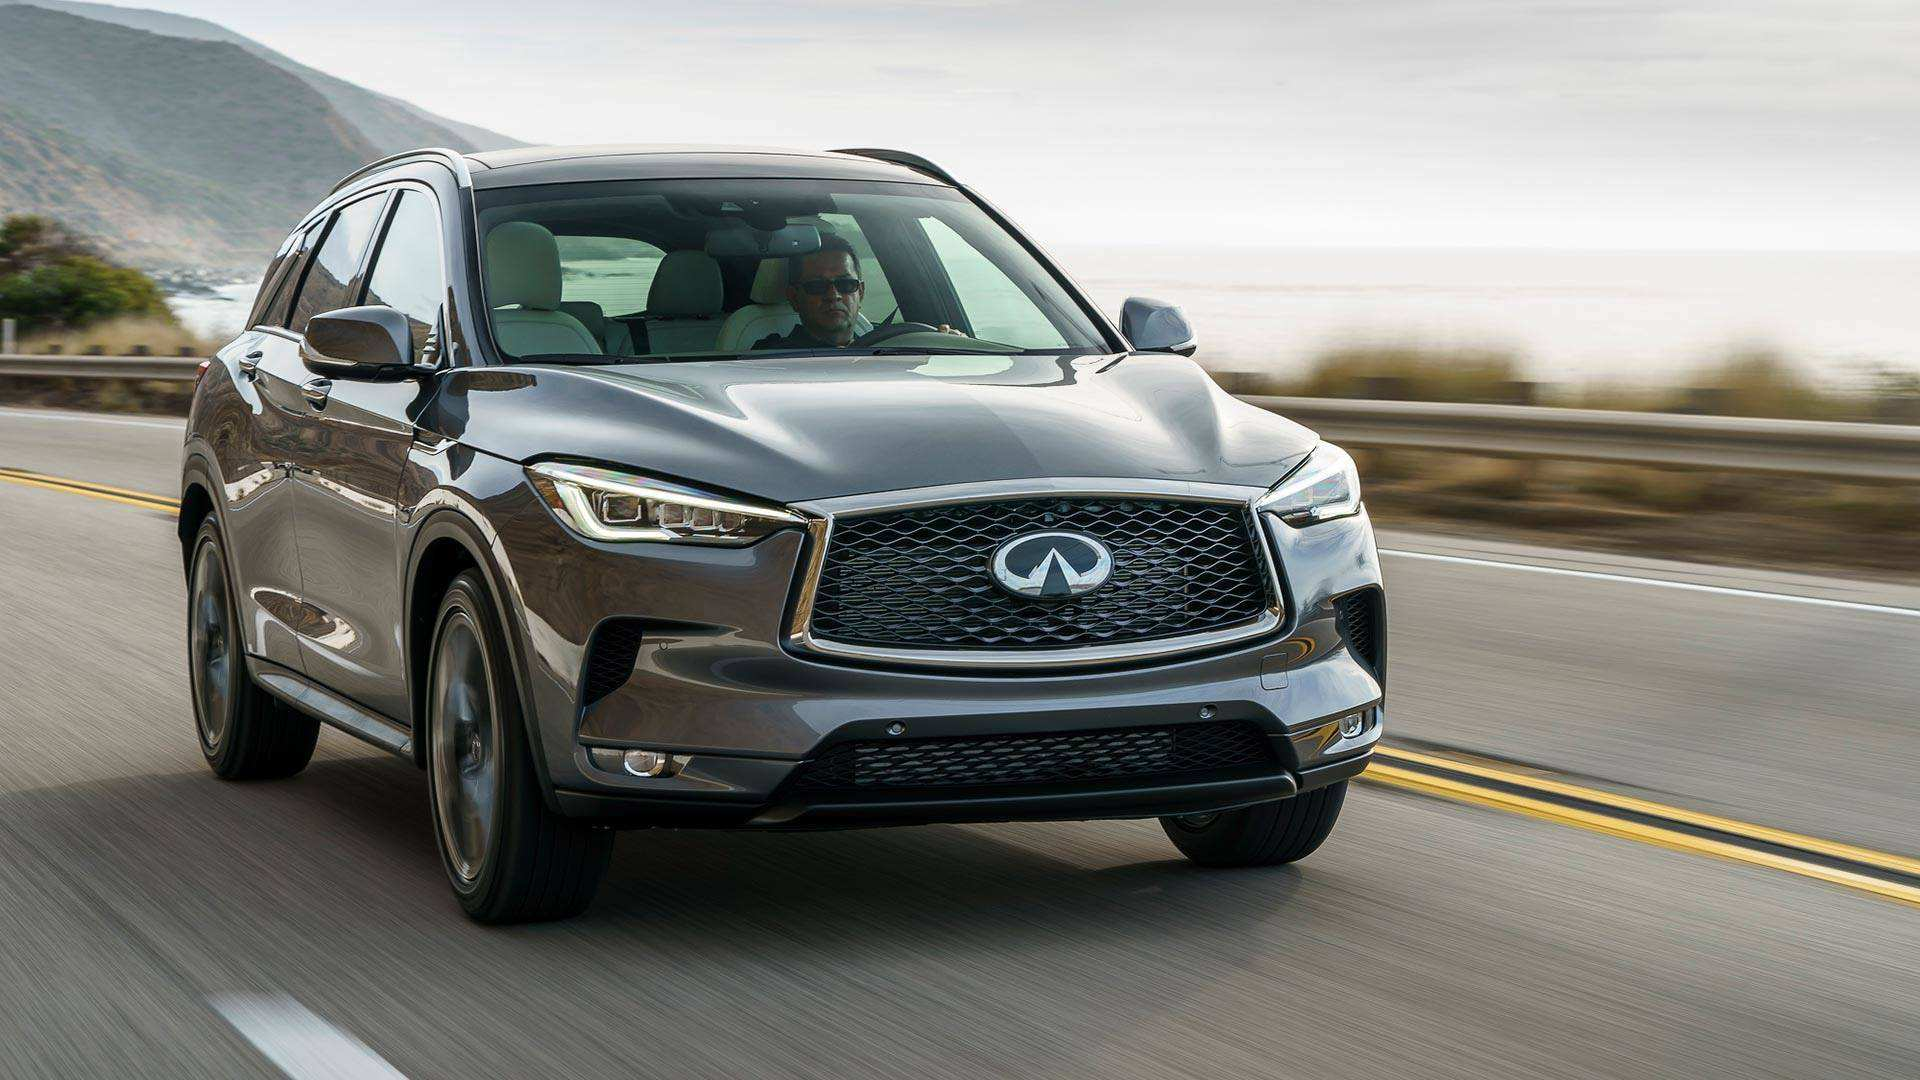 78 New 2019 Infiniti Qx50 First Drive Exterior and Interior by 2019 Infiniti Qx50 First Drive